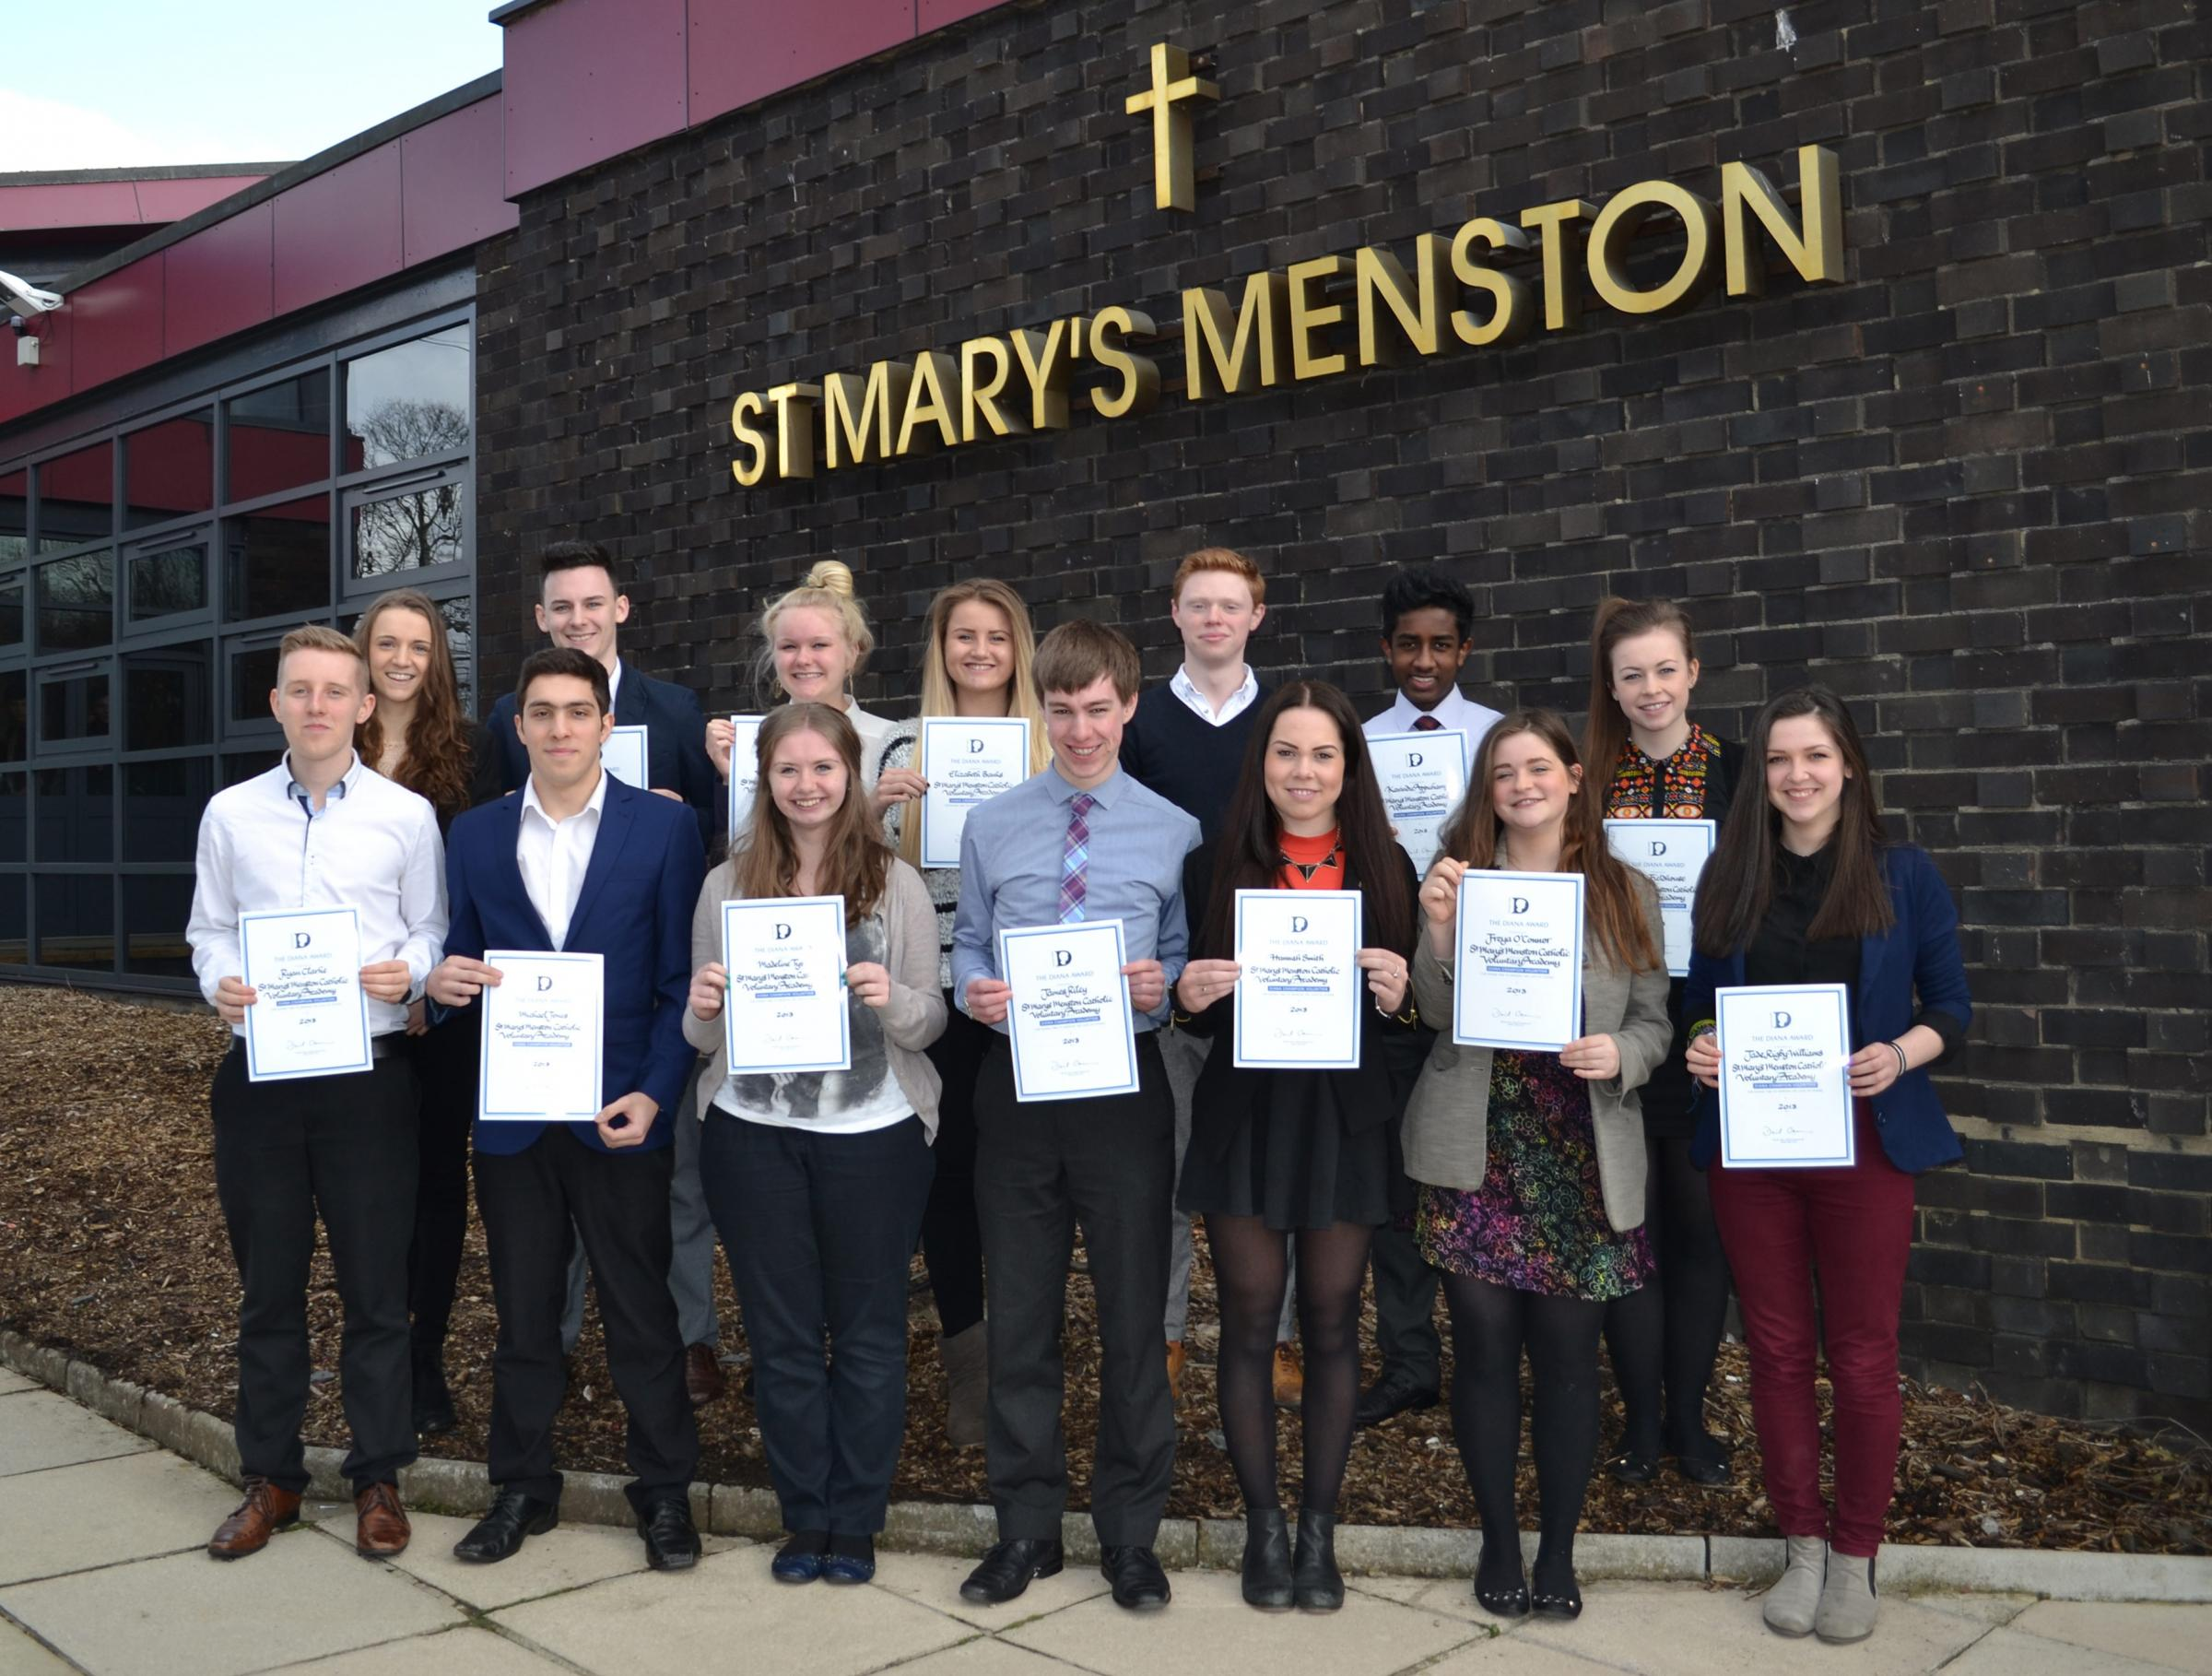 St Mary's students with their Diana Awards